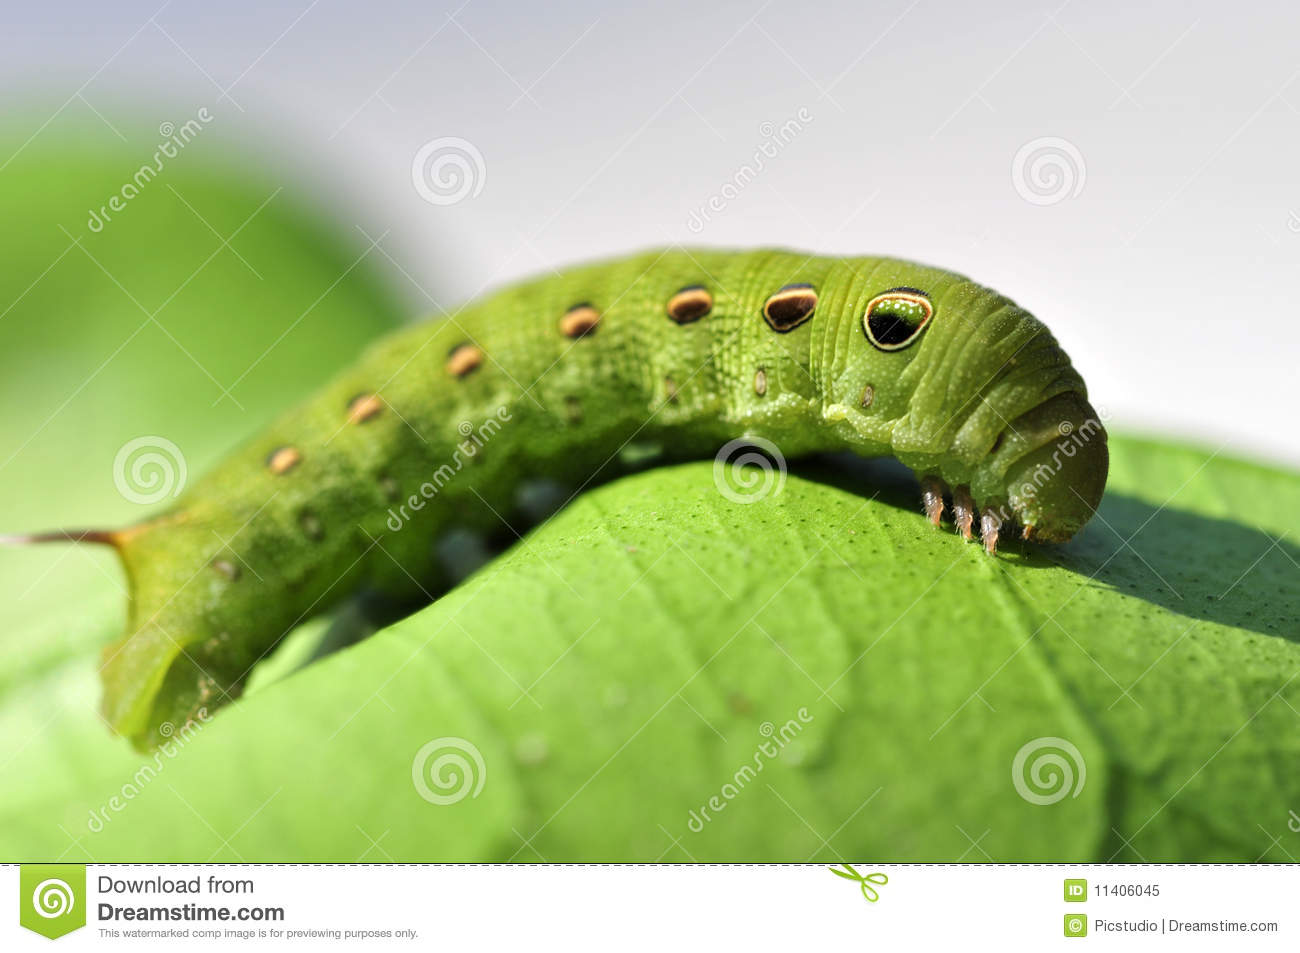 Green Caterpillar Royalty Free Stock Photo - Image: 11406045